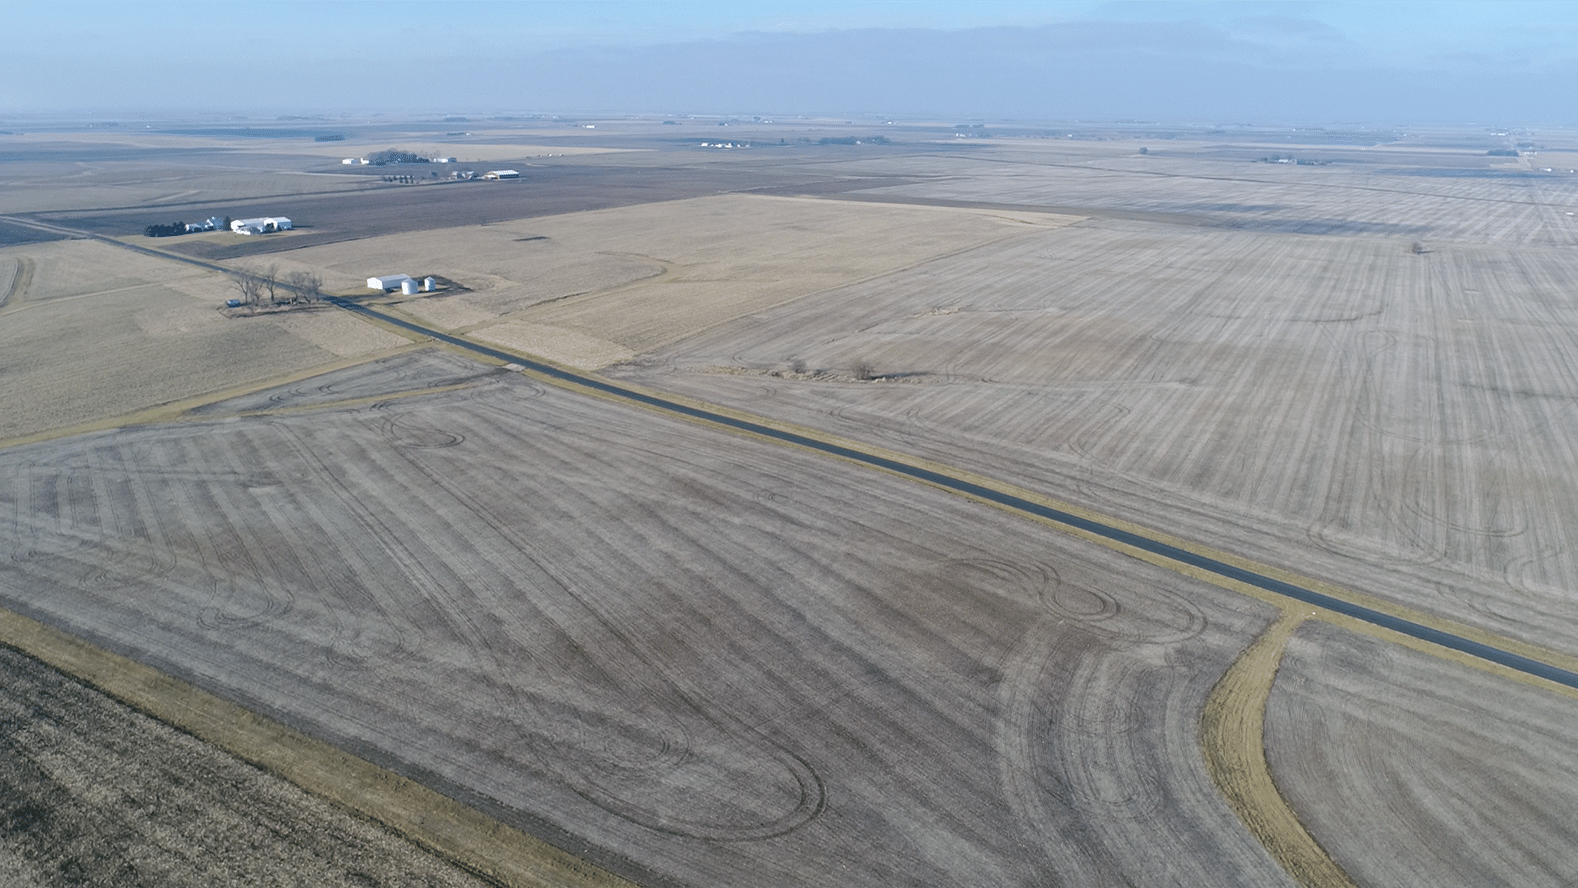 Champaign Co Auction 208 Ac - Feb 18 2020 - Looking Northwest